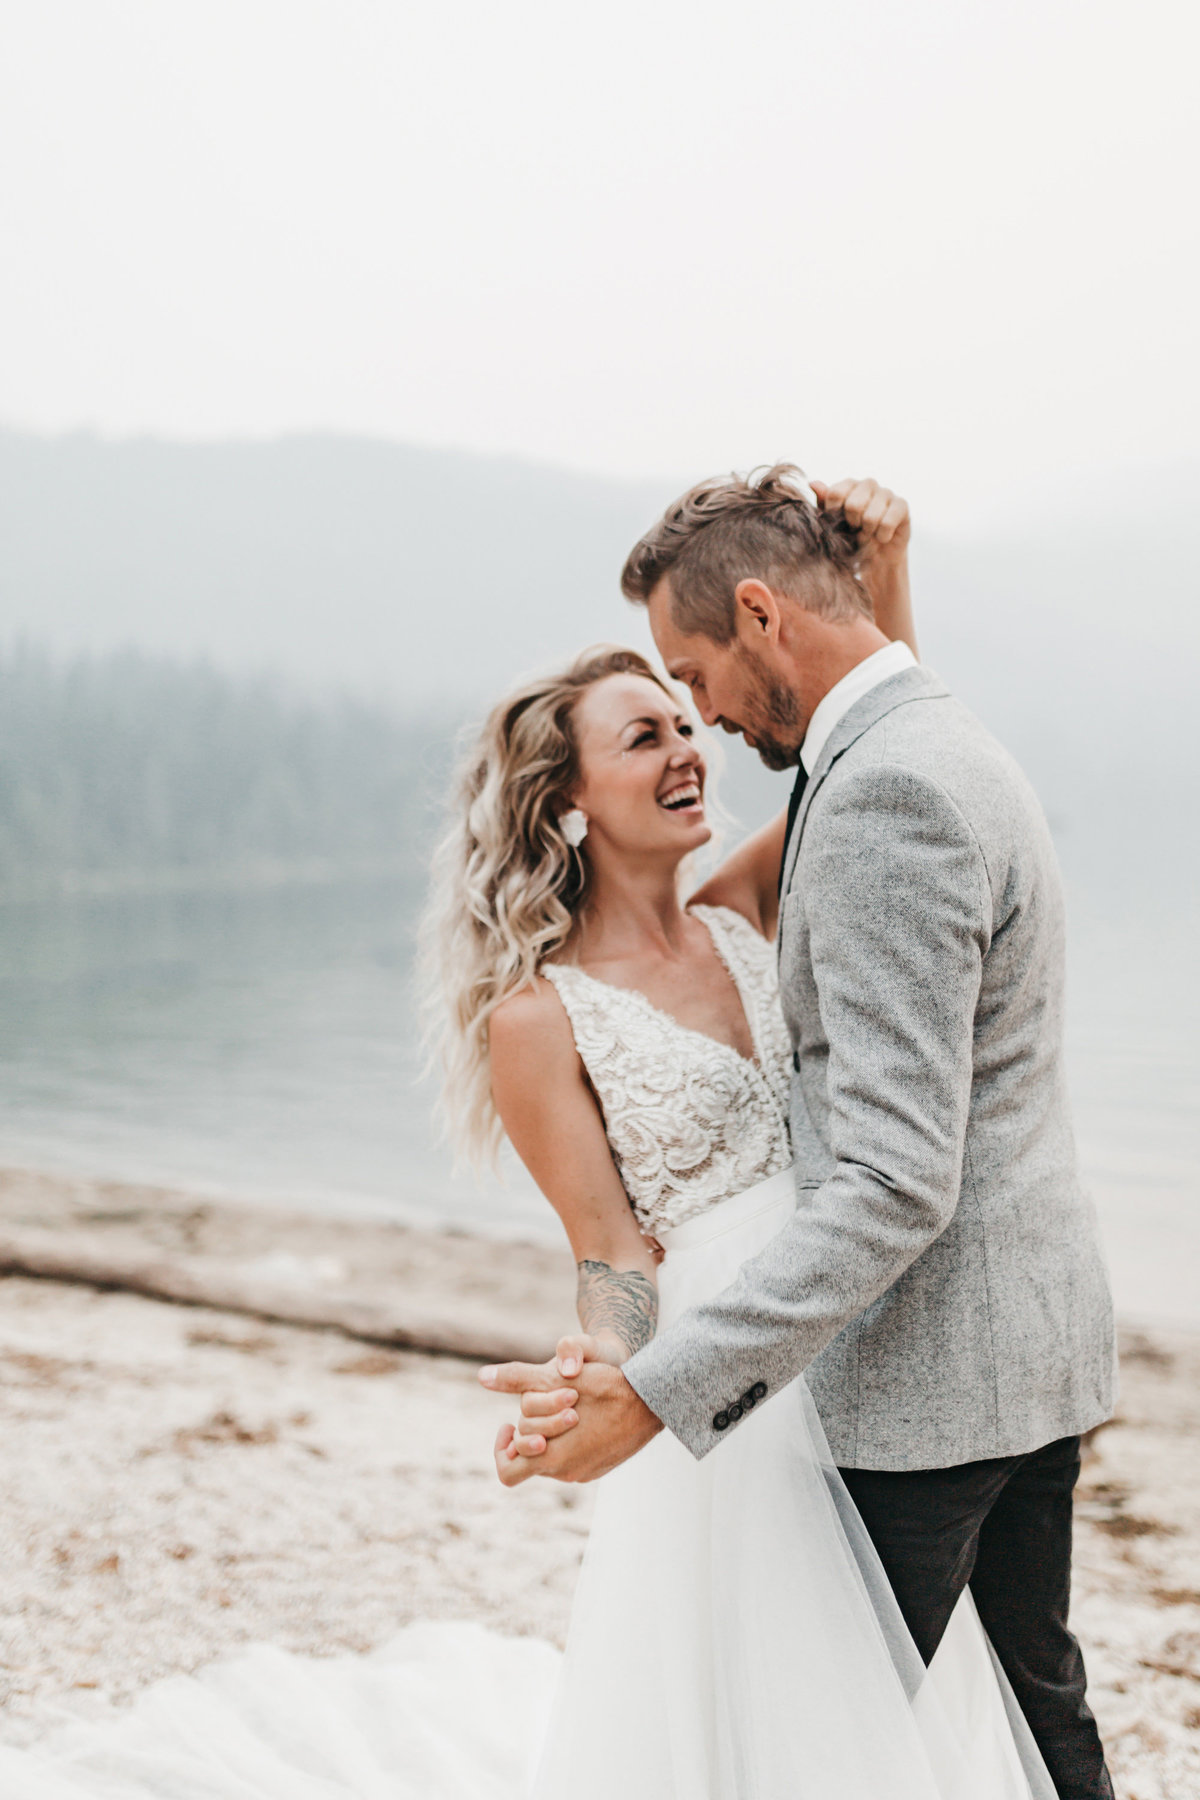 athena-and-camron-sara-truvelle-bridal-wenatchee-elopement-intimate-12-laugh-first-dance